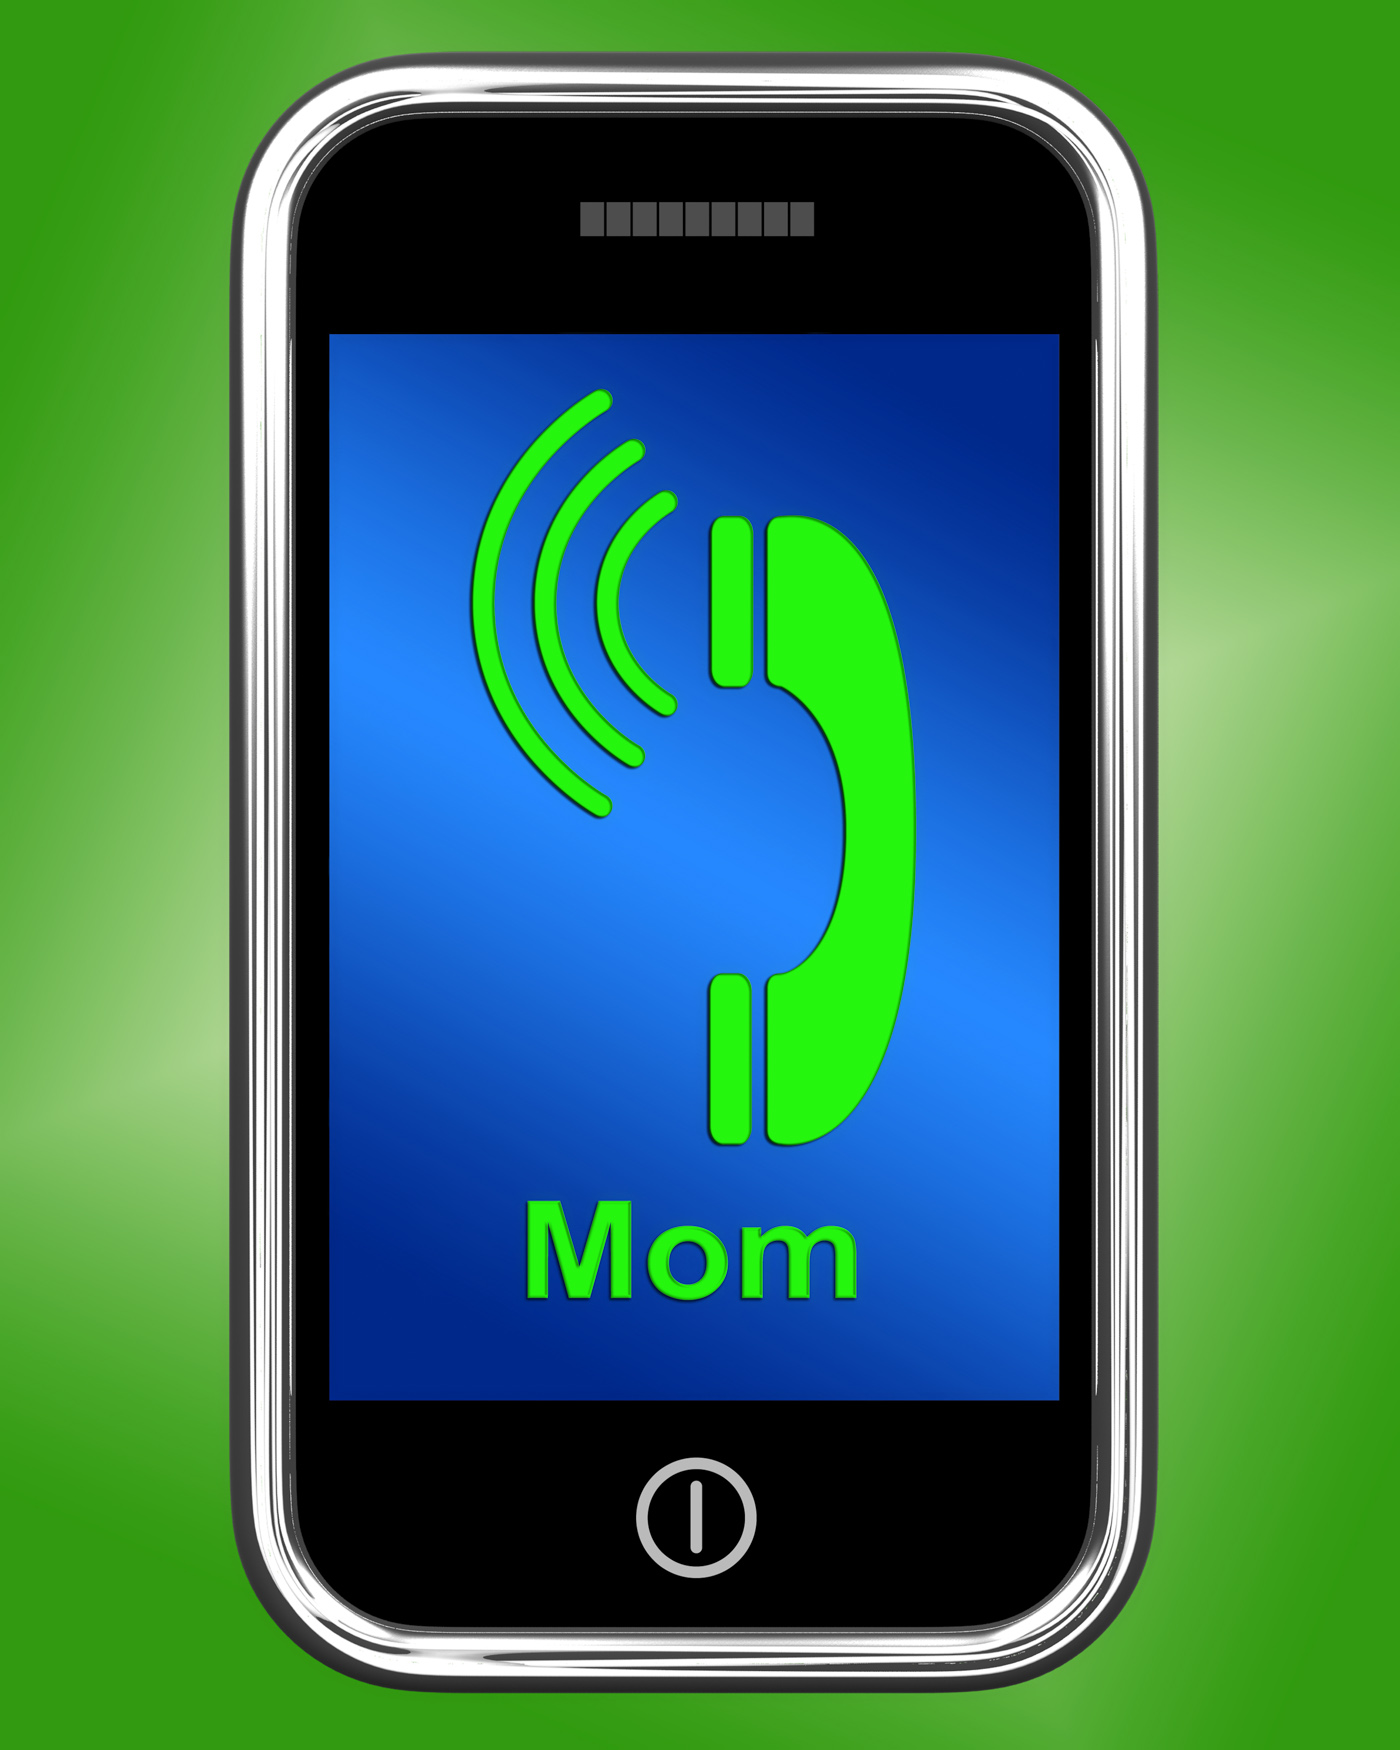 Call mom on phone means talk to mother photo